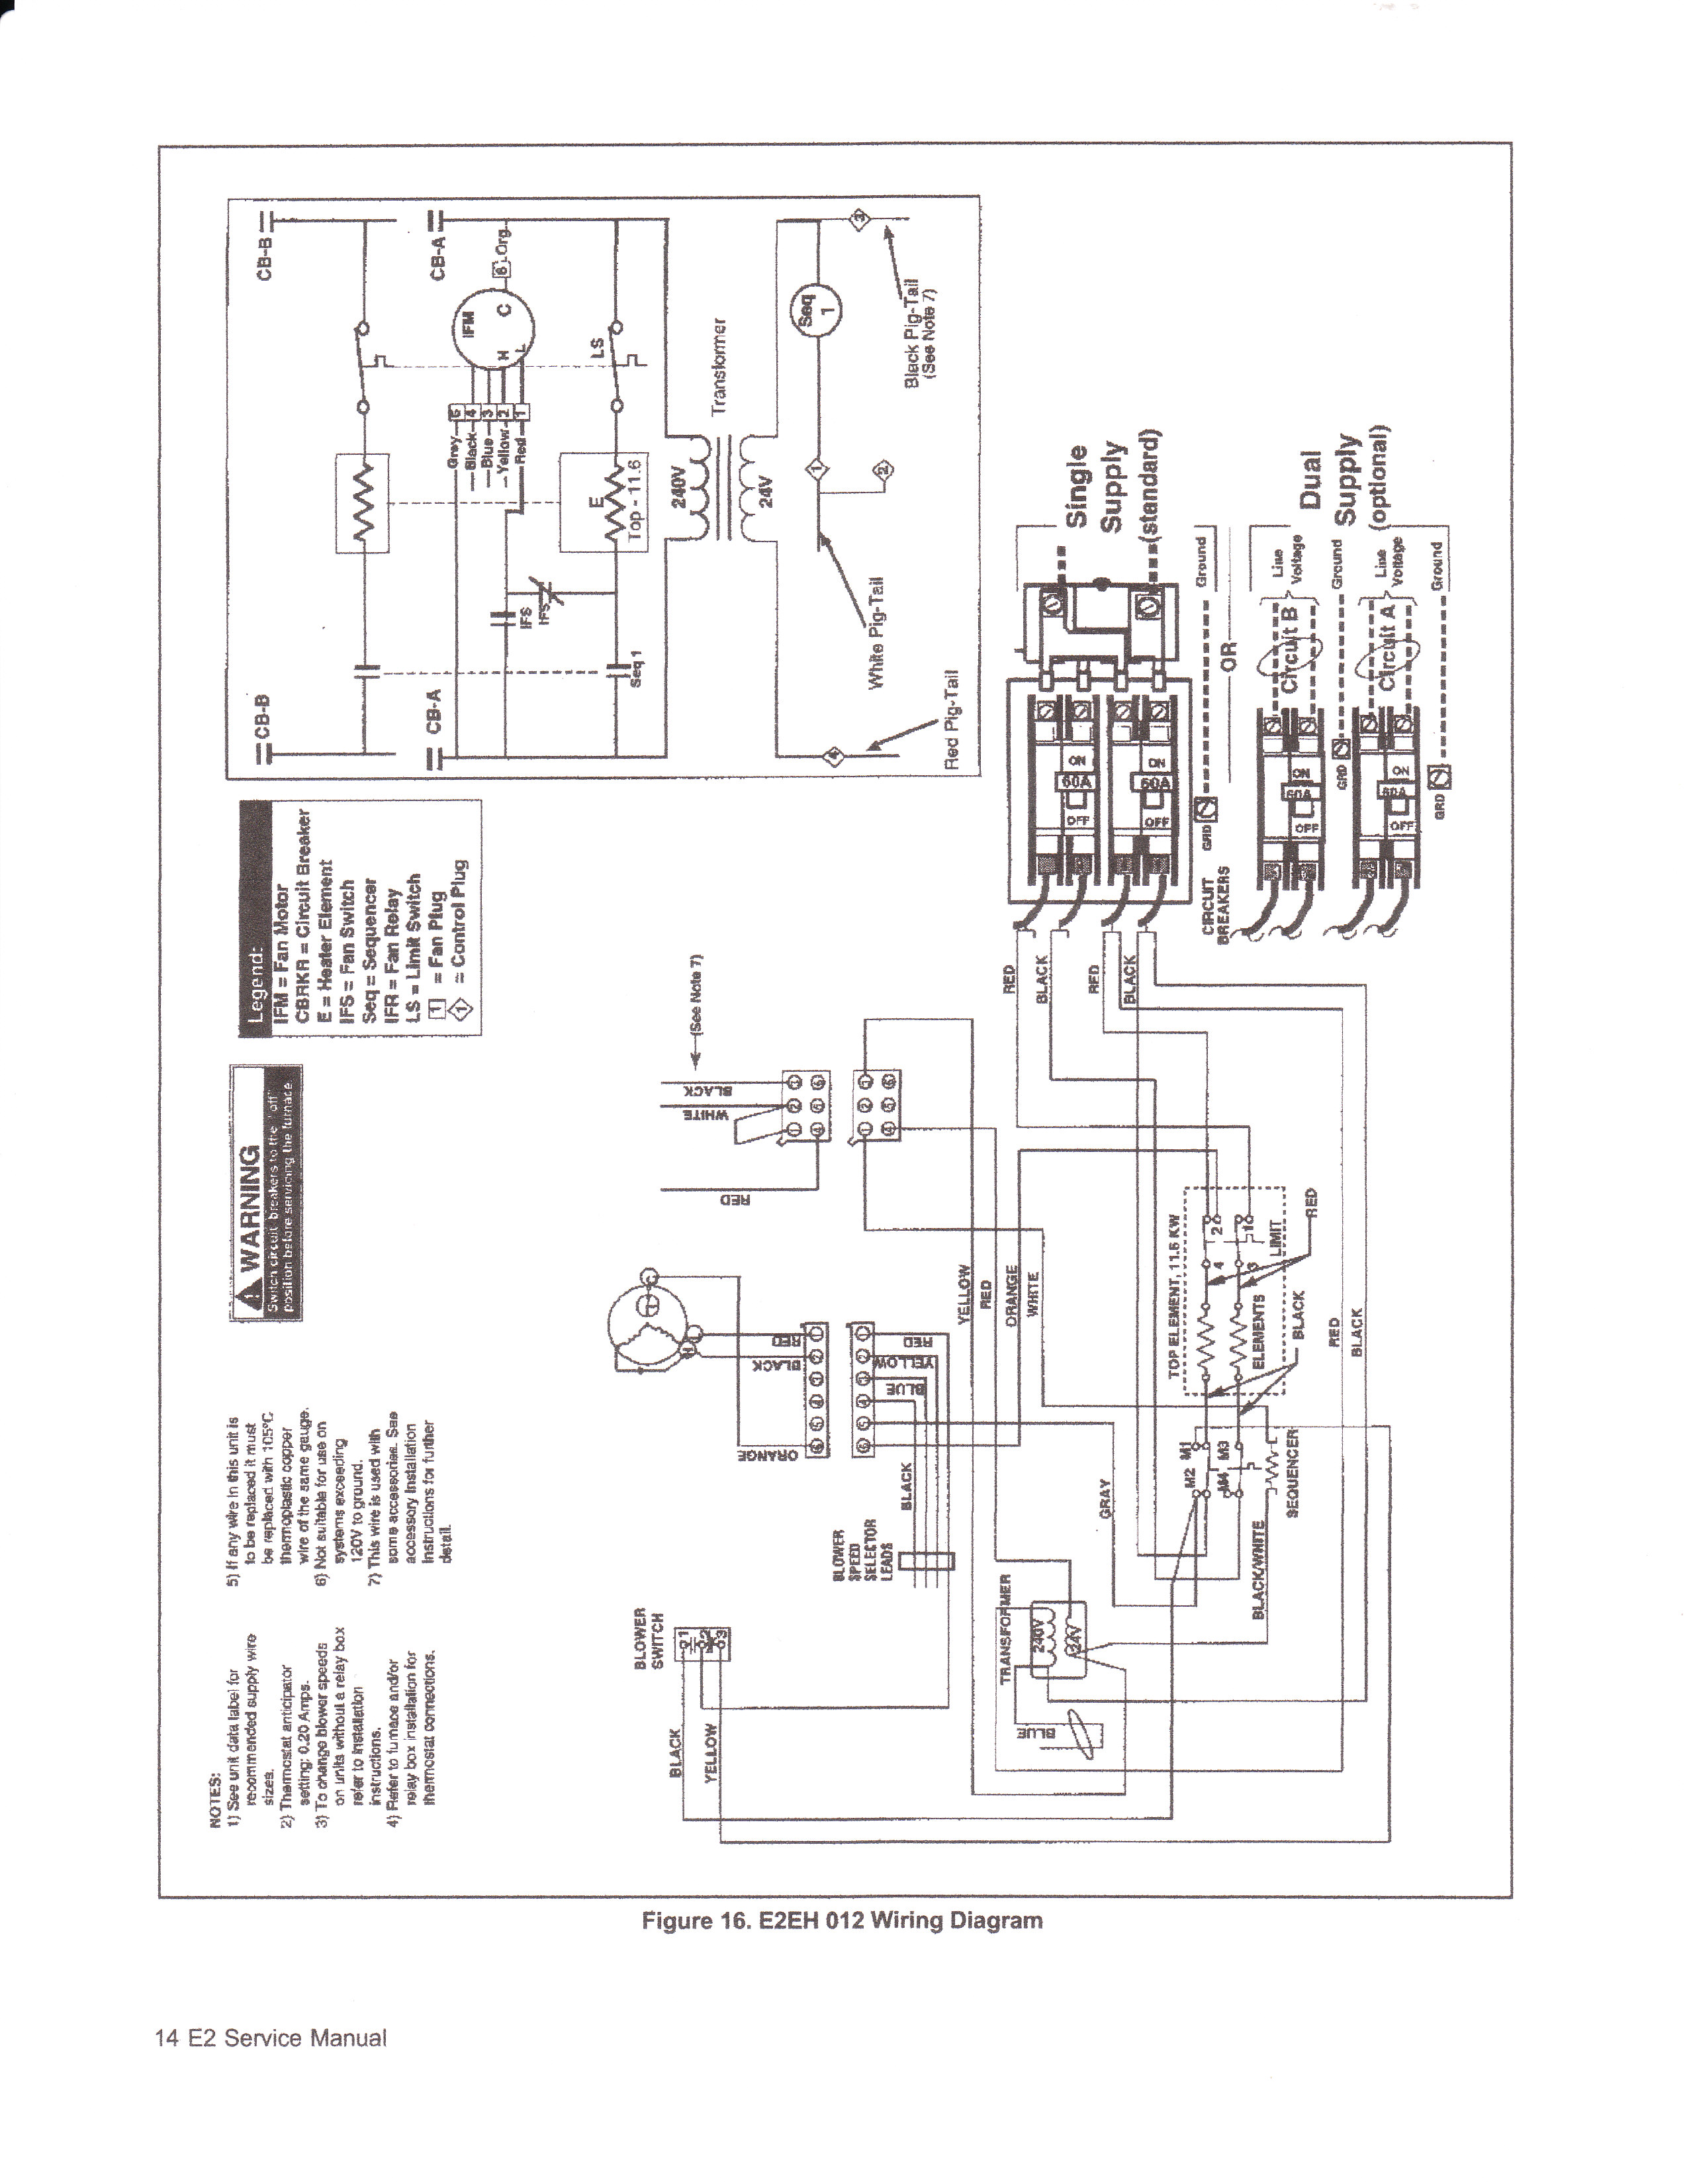 Fantastic Wesco Furnace Wiring Diagram Basic Electronics Wiring Diagram Wiring Cloud Overrenstrafr09Org